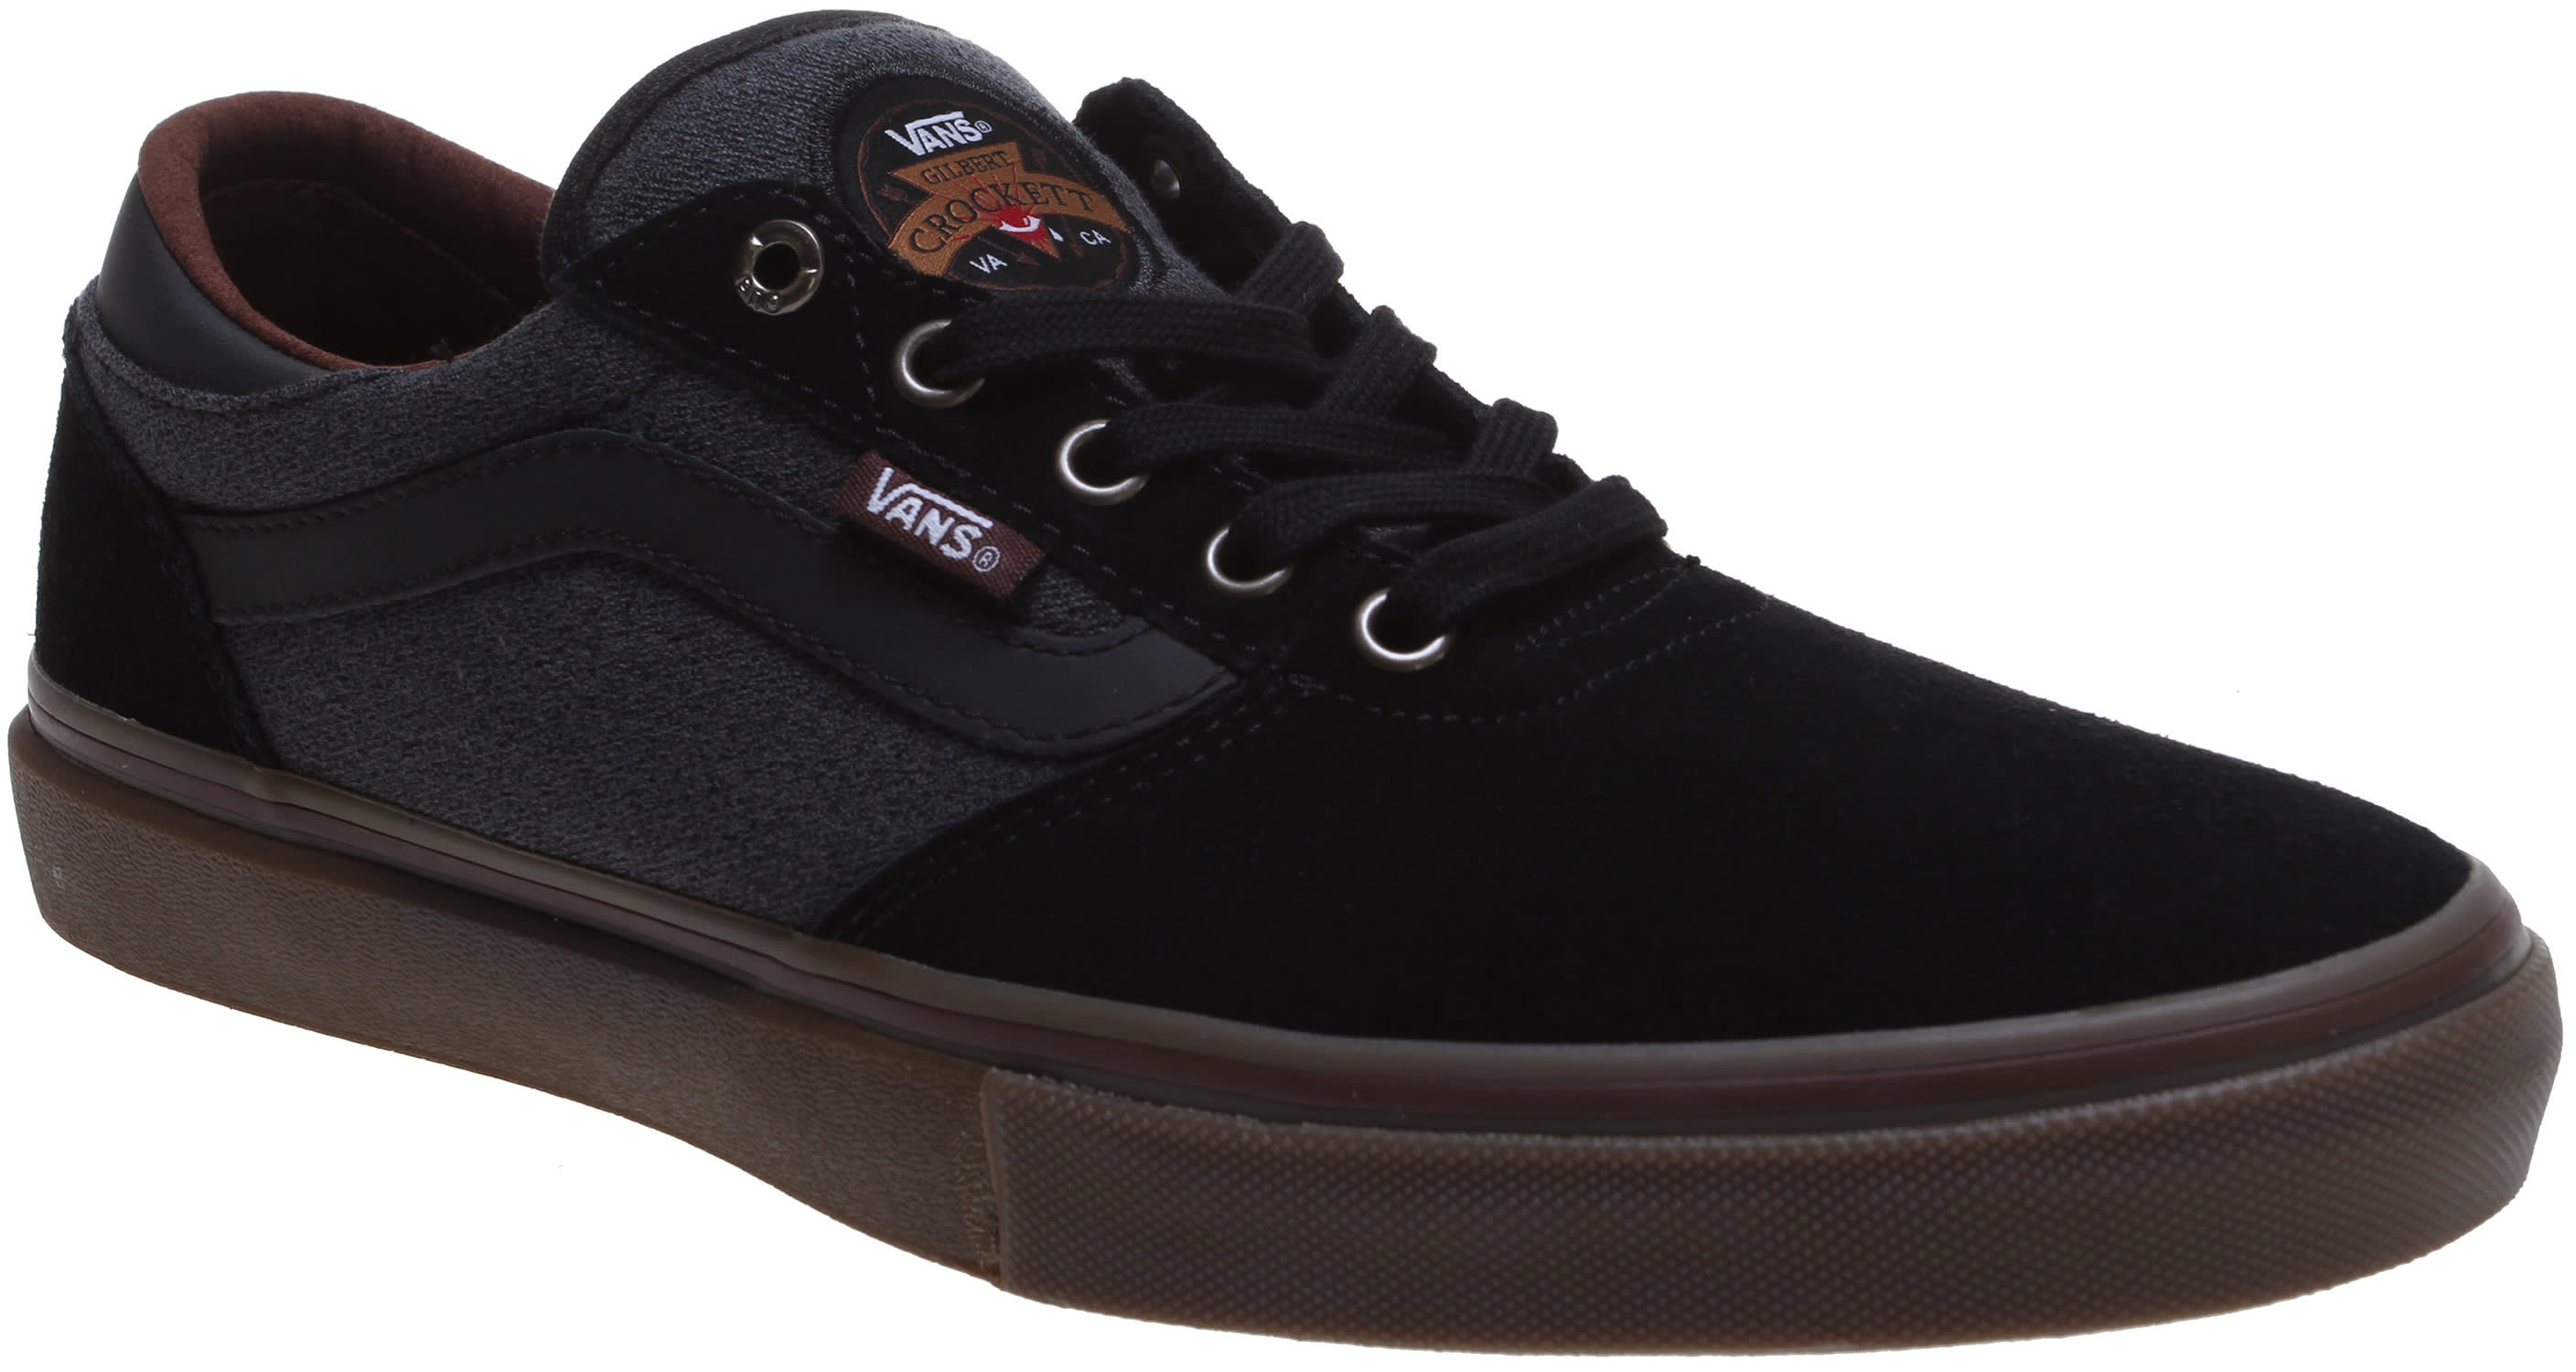 Vans Gilbert Crockett Shoes NkdPIkwPl